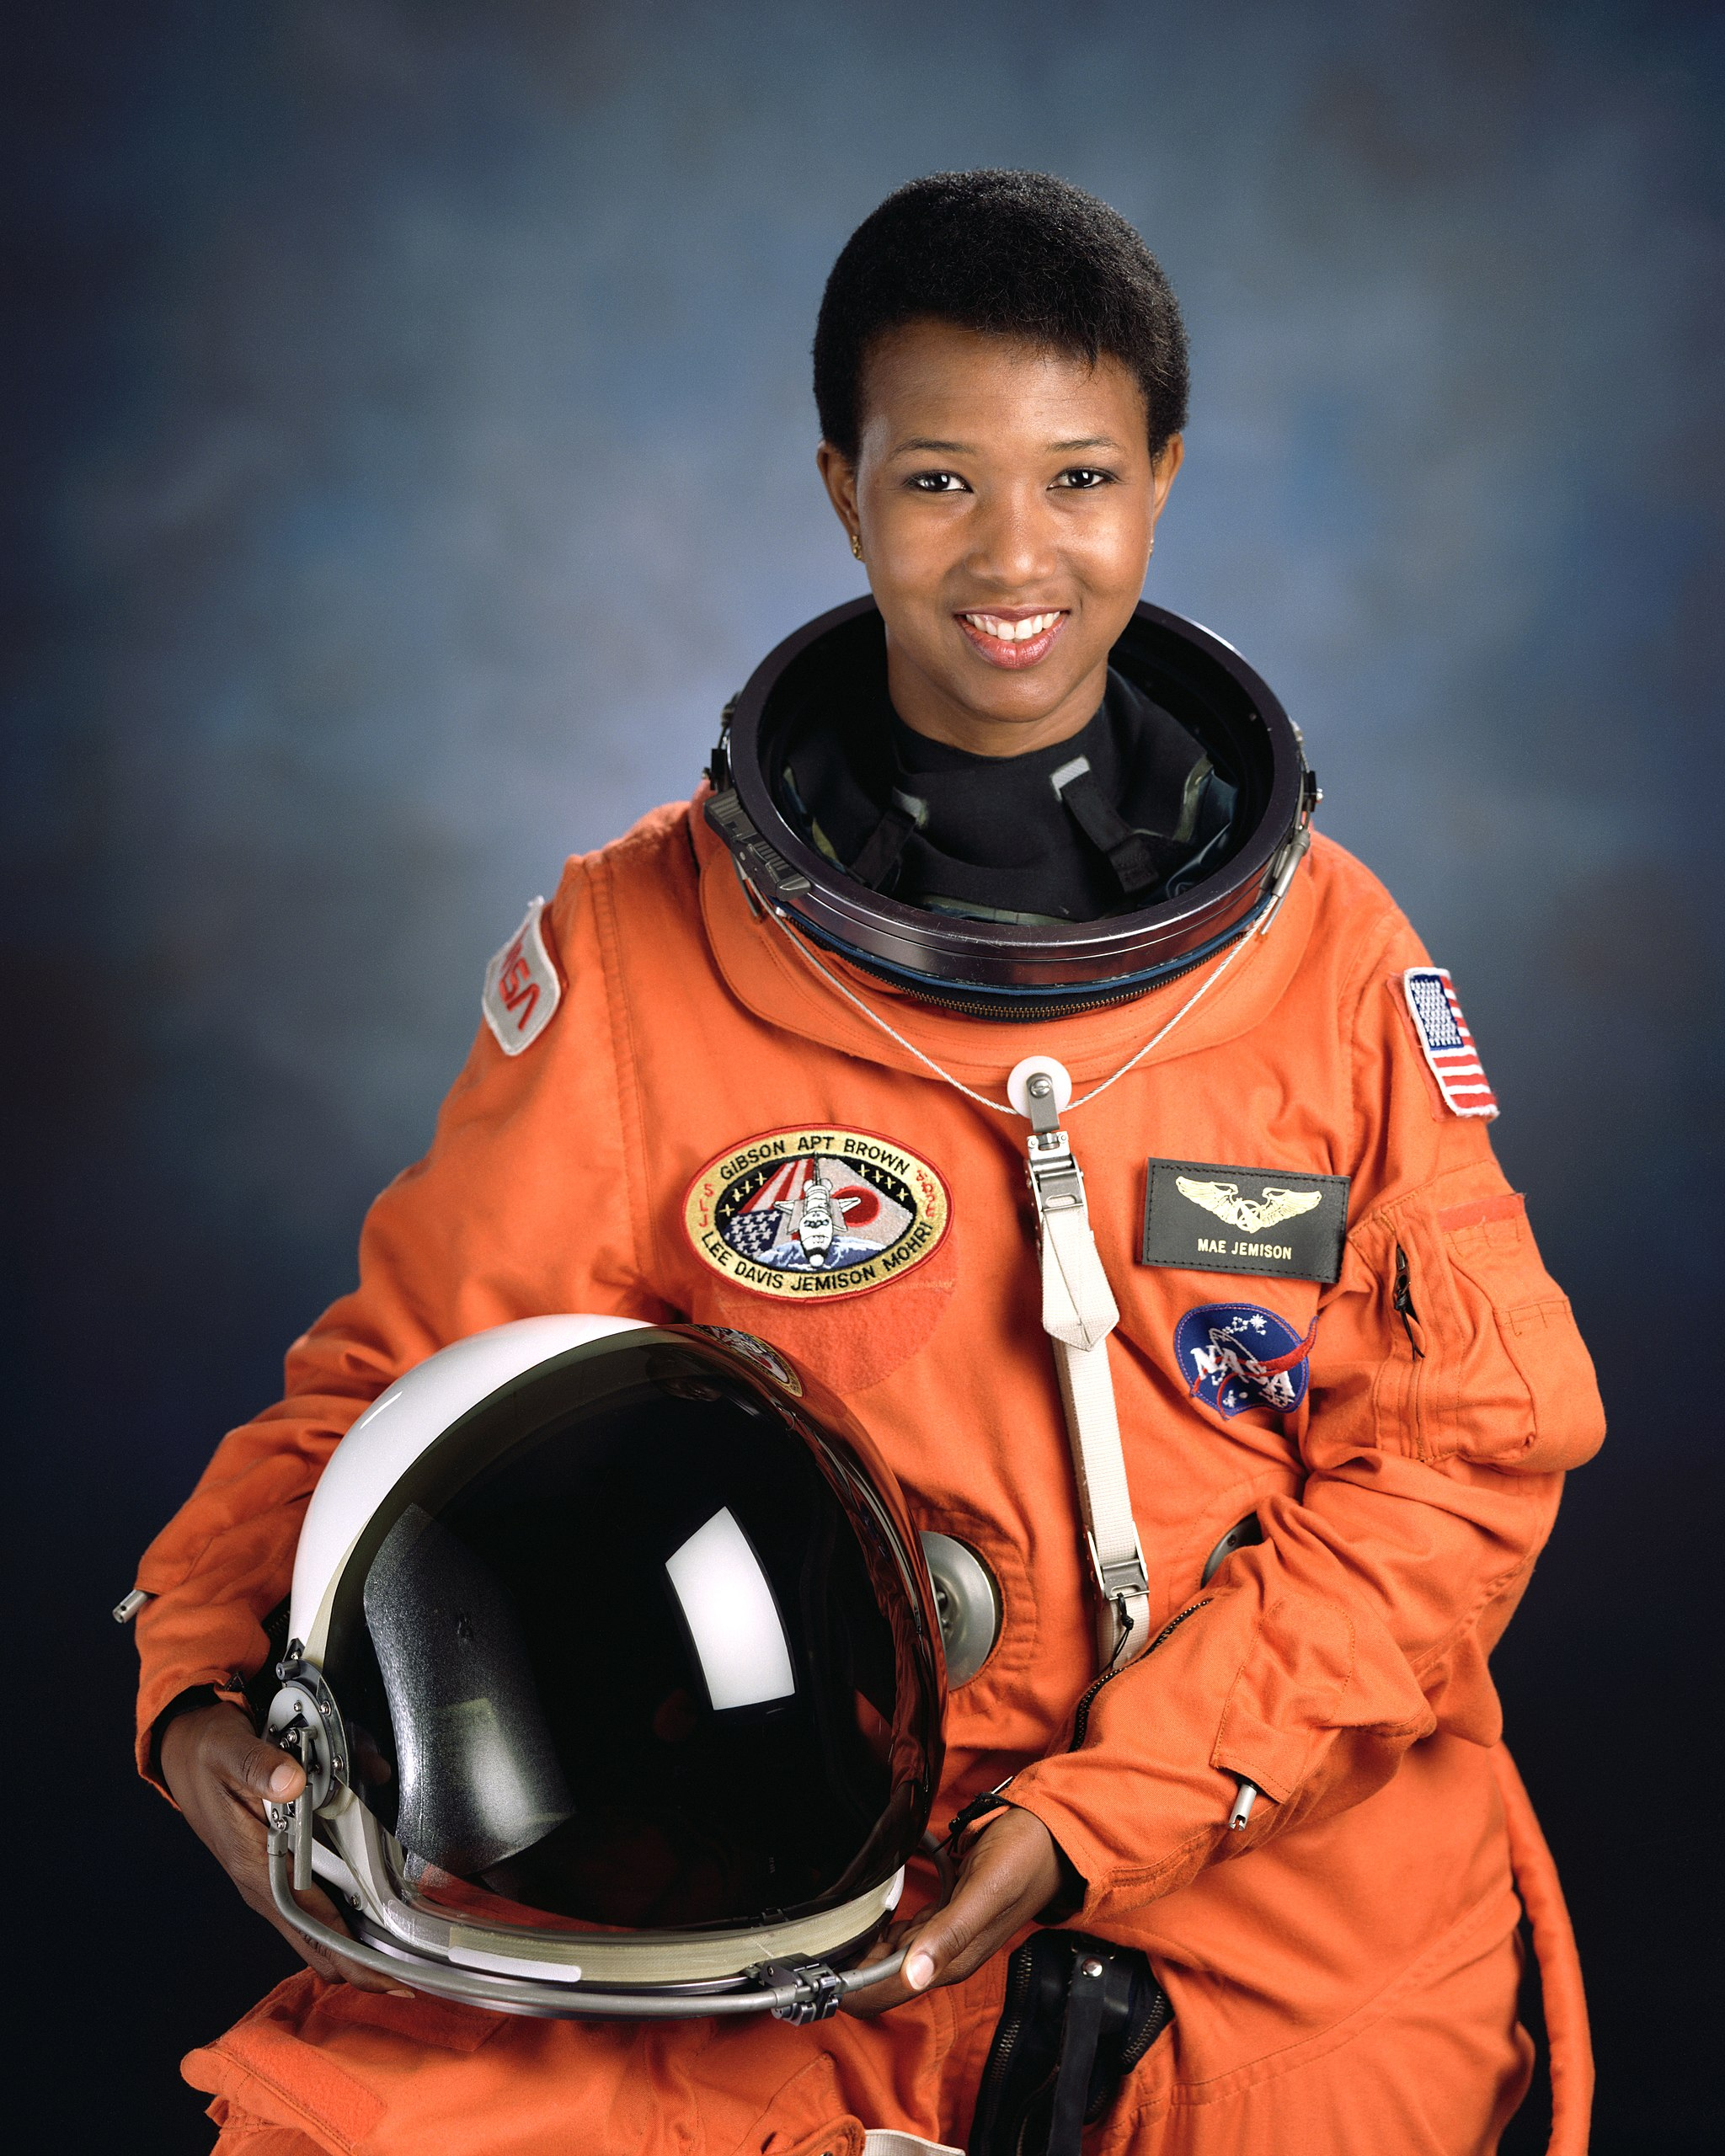 Mae Jemison in orange NASA astronaut spacesuit